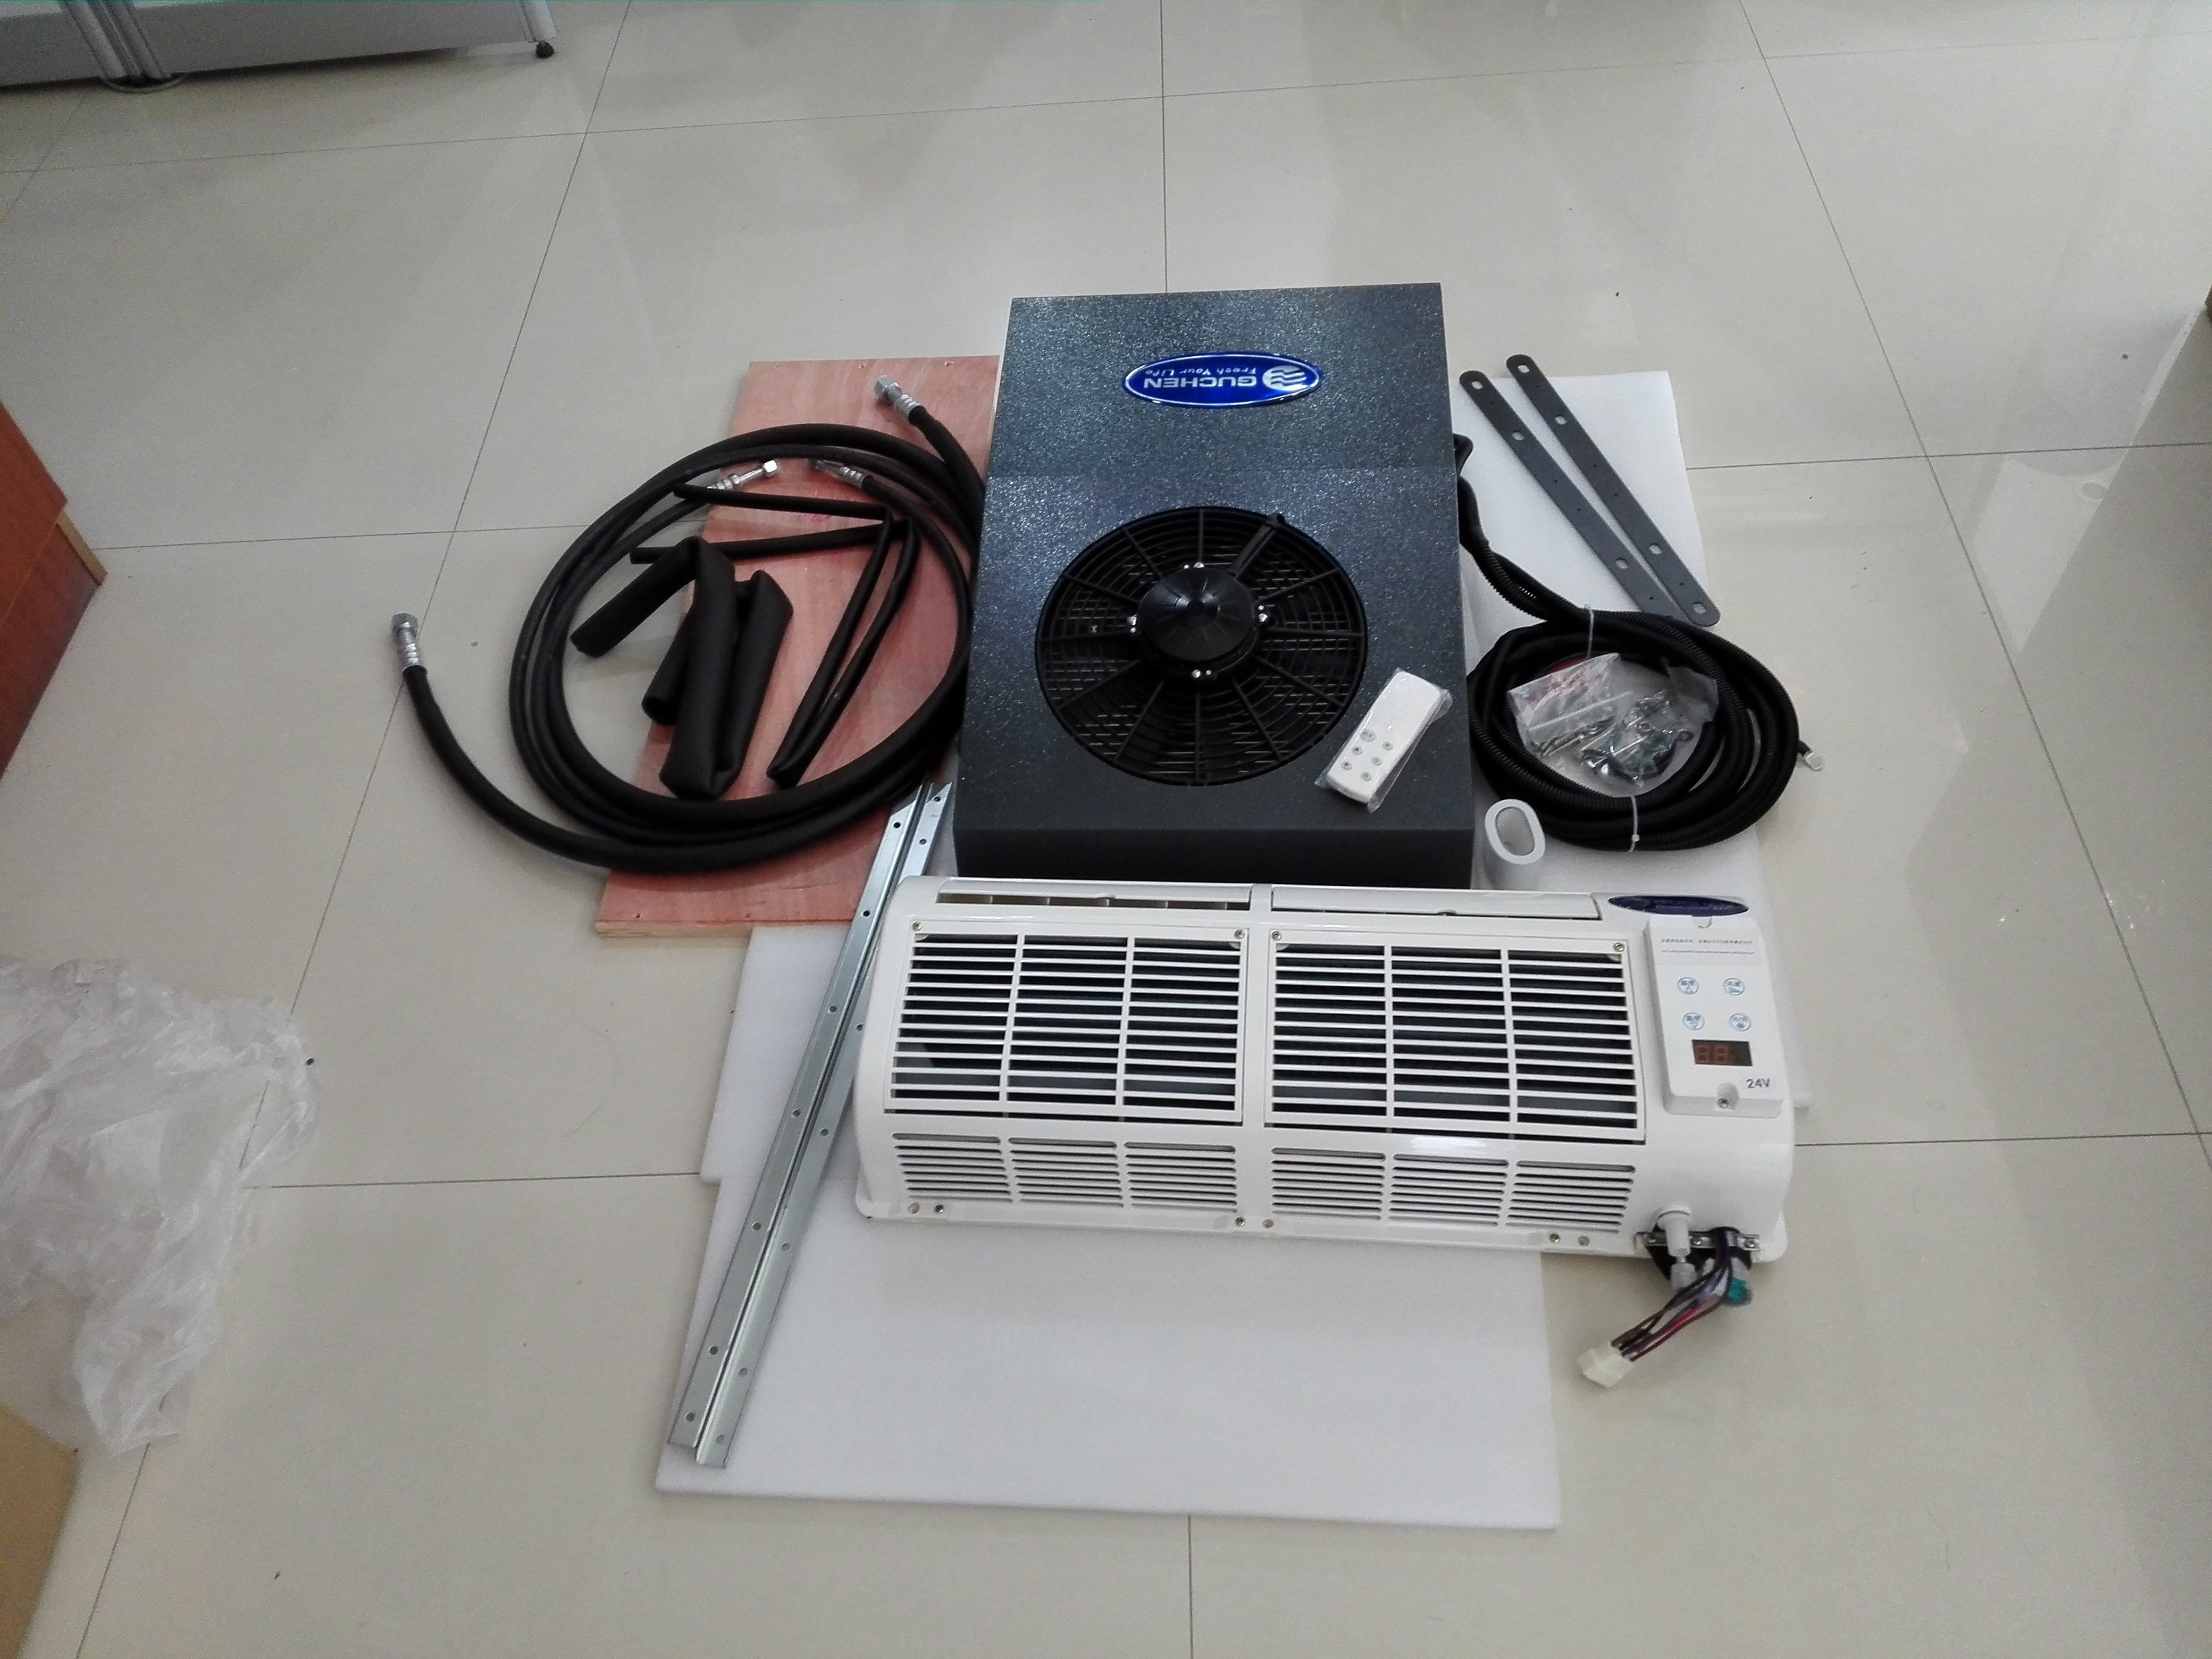 small resolution of airpro300b van air conditioner uses low voltage protector for control panel and compressor to avoid discharging the battery below its required voltage